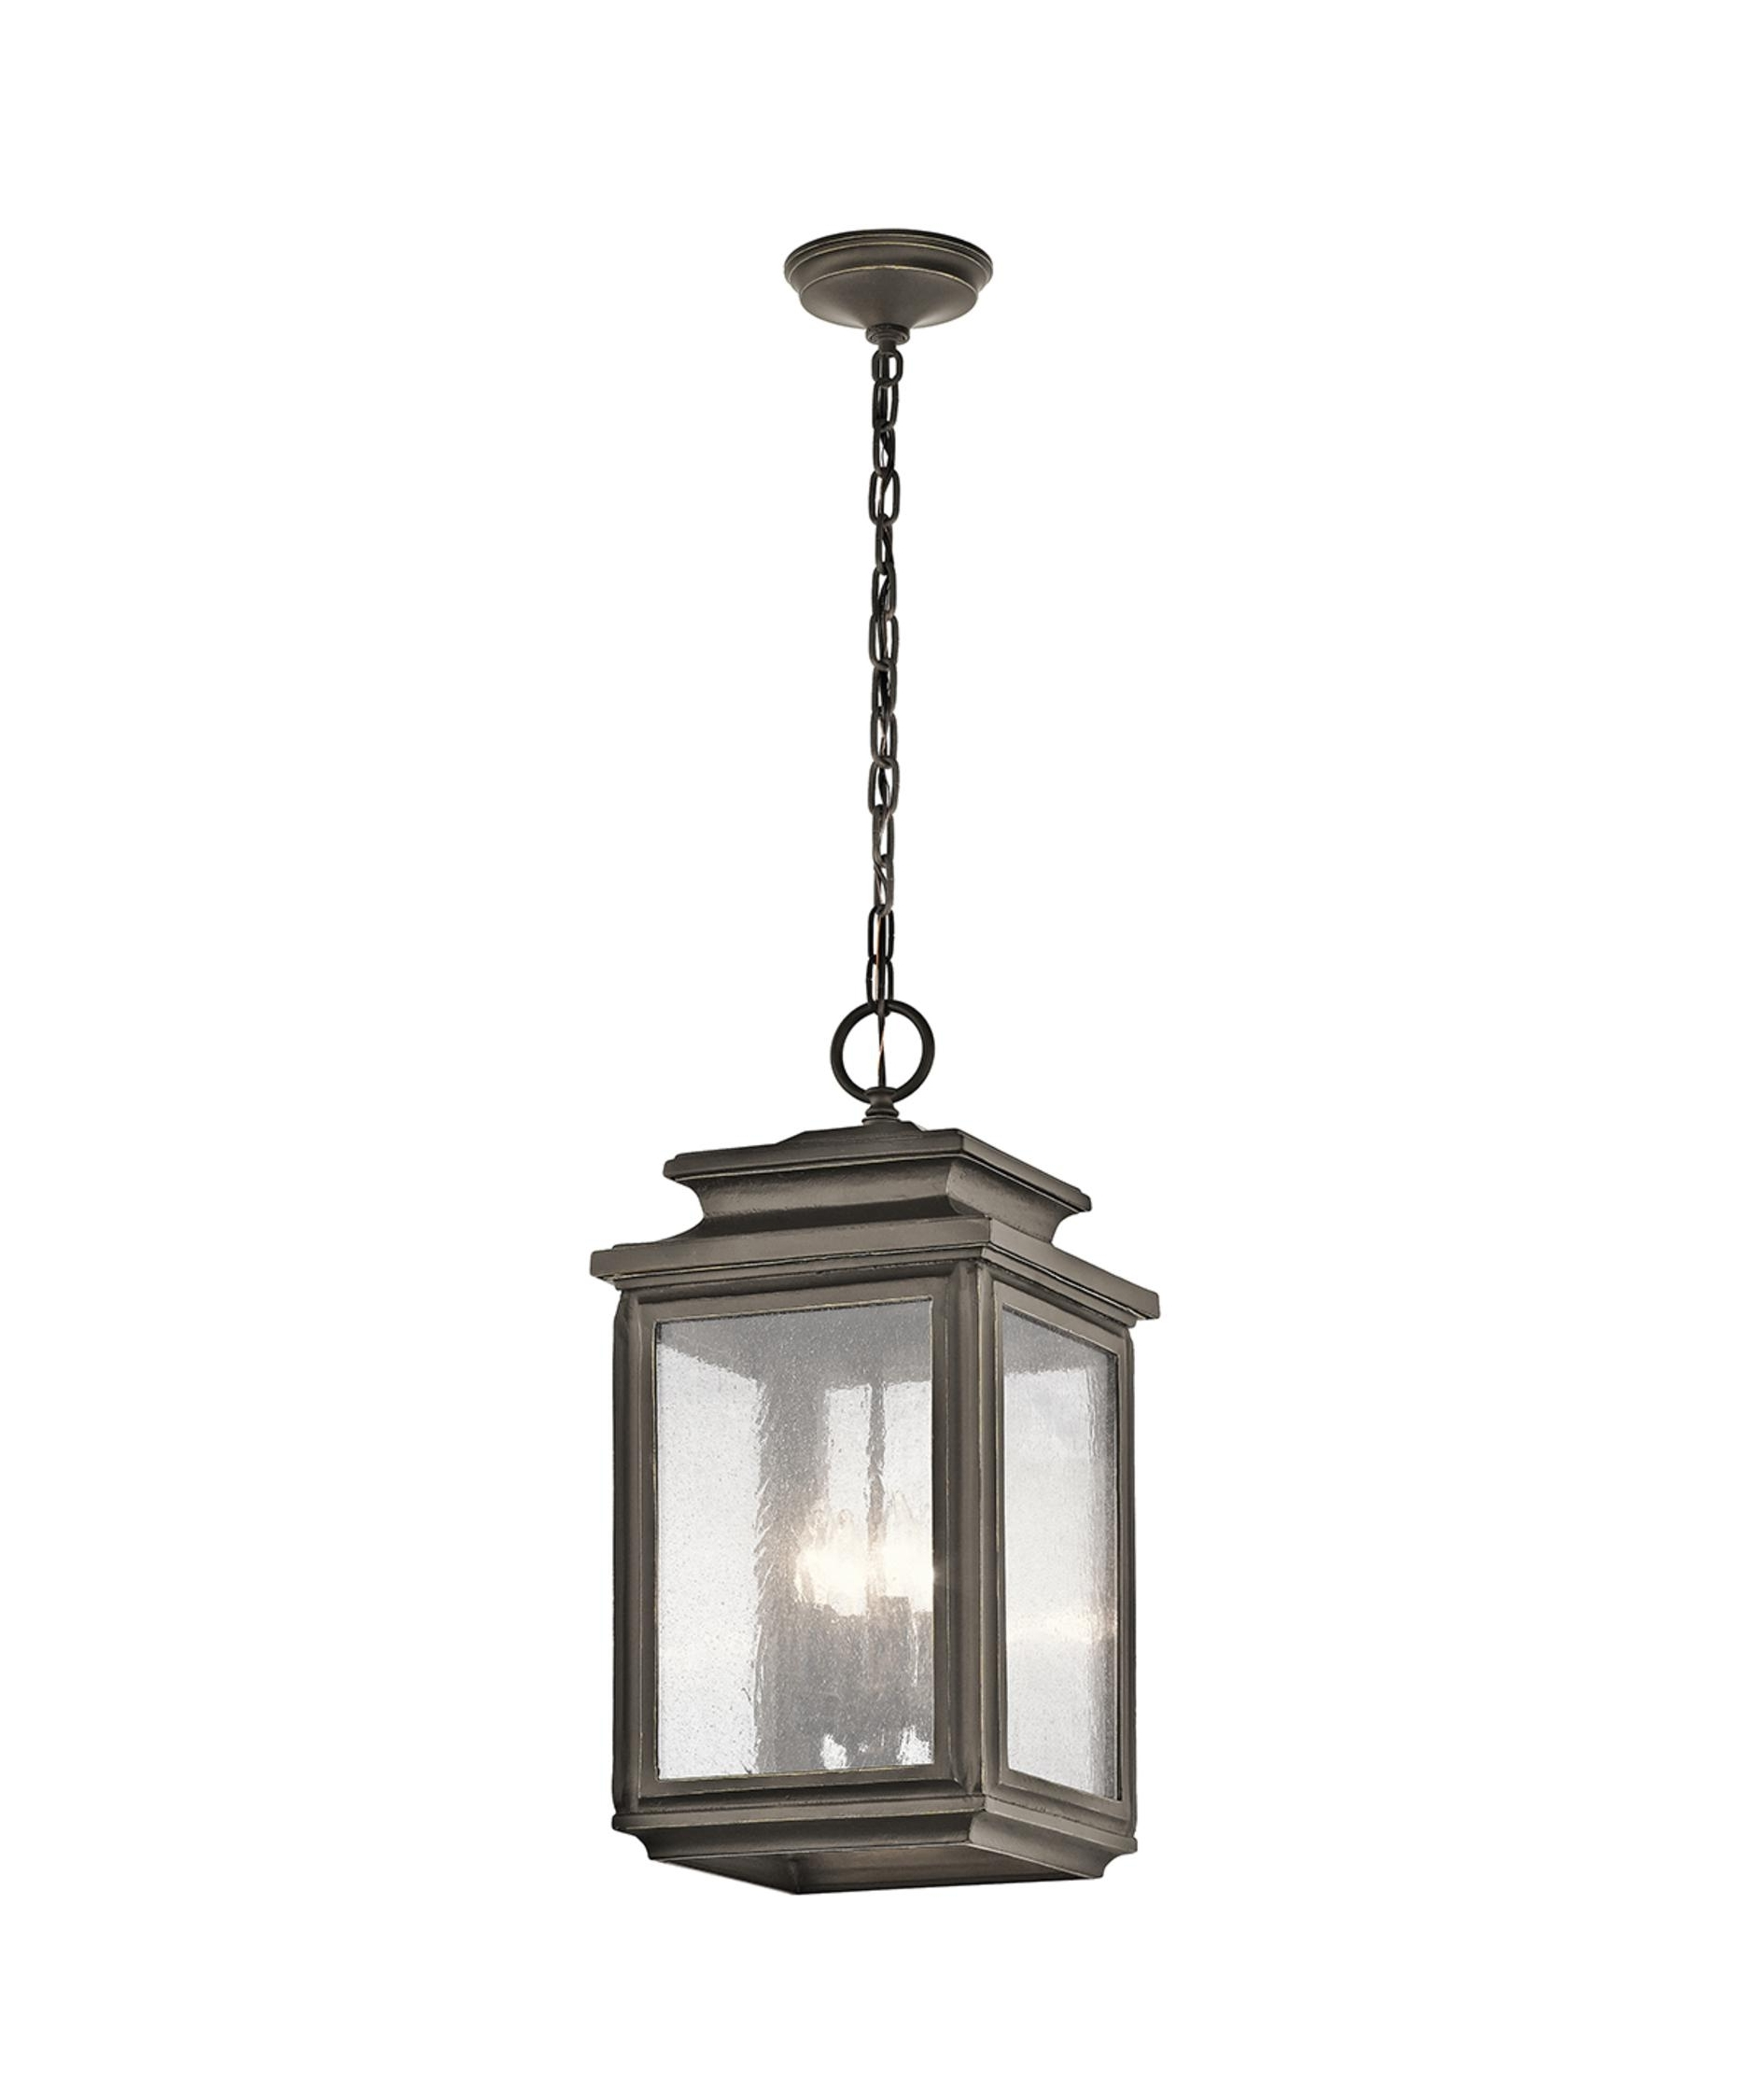 Kichler 49505 Wiscombe Park 11 Inch Wide 4 Light Outdoor Hanging Throughout Well Known Kichler Outdoor Lanterns (View 19 of 20)